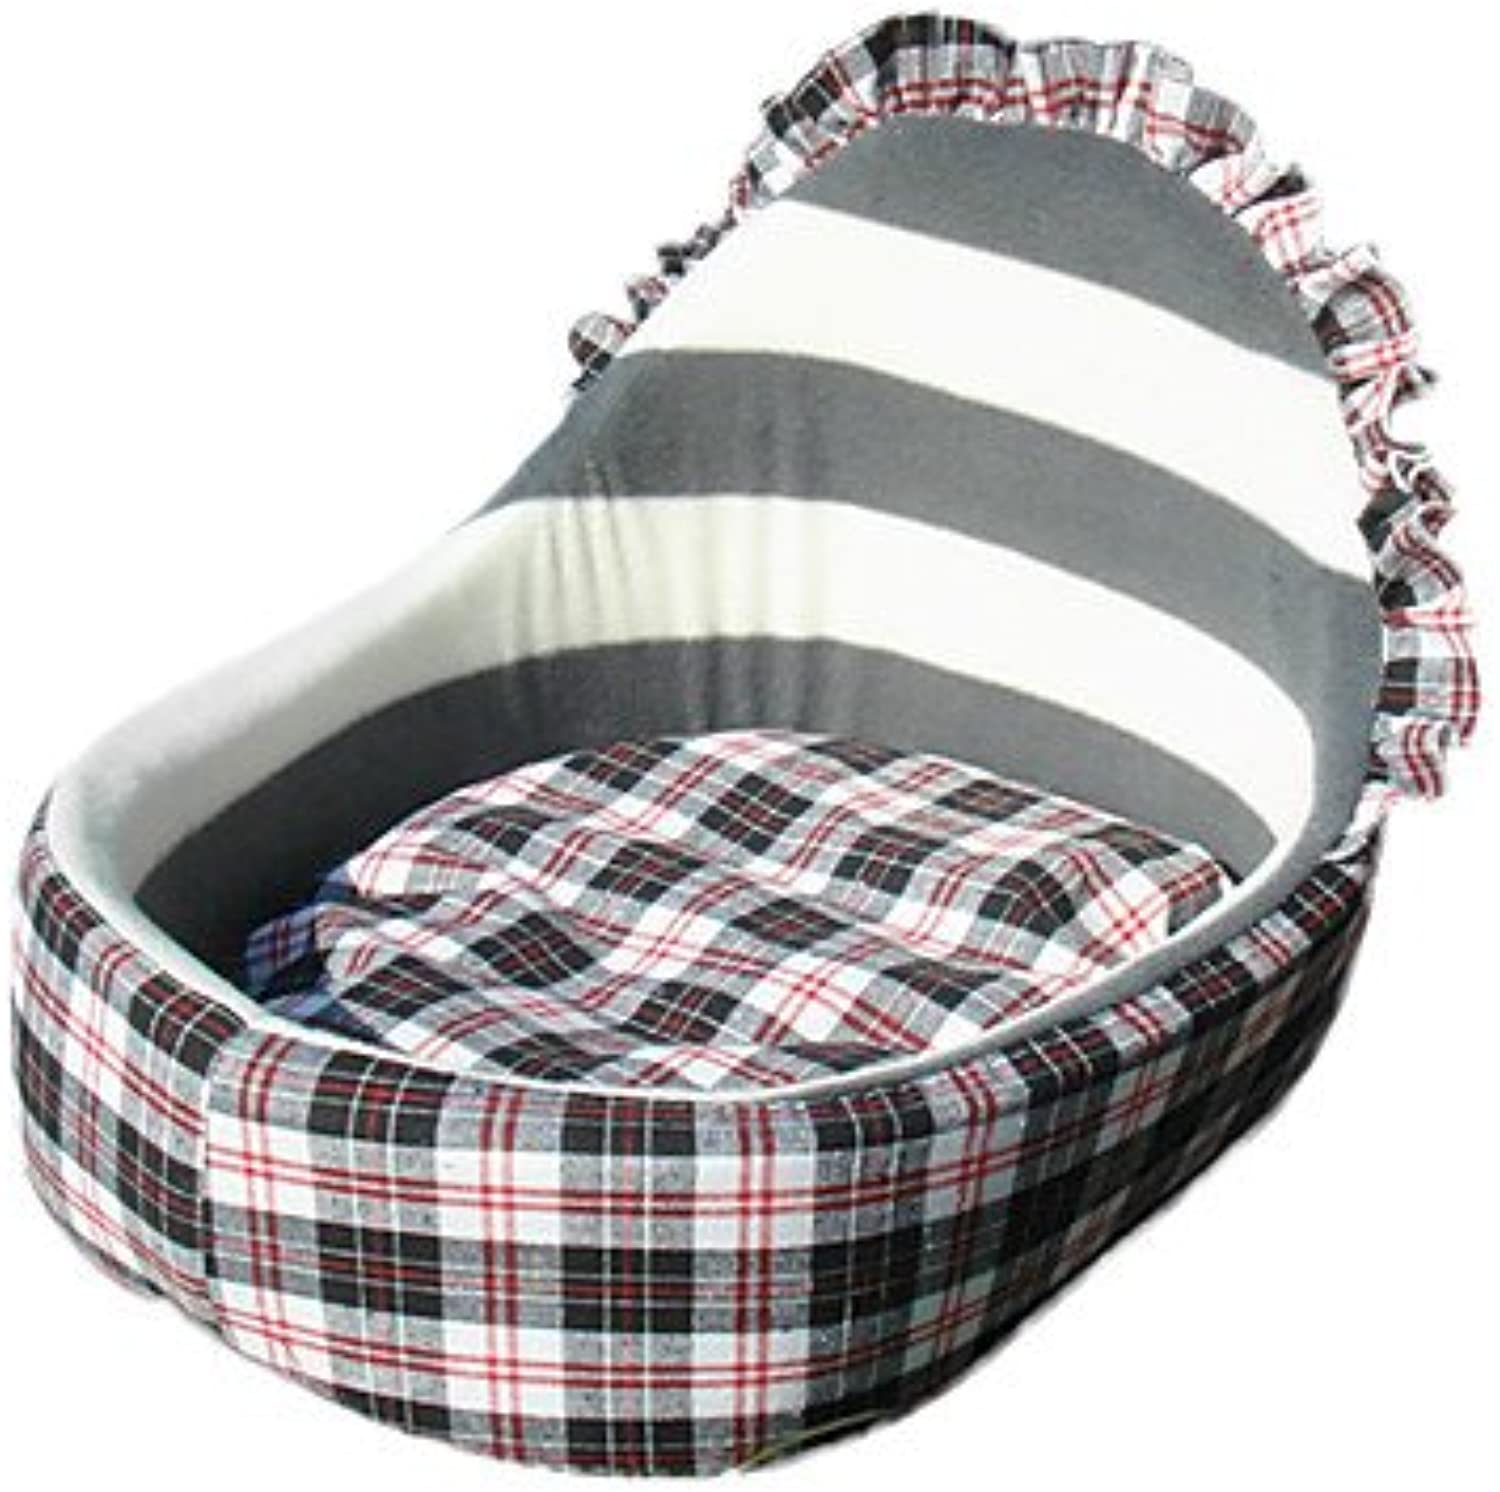 Quick shopping Cradle Style Zebra Soft Lining Bed for Pets Dogs